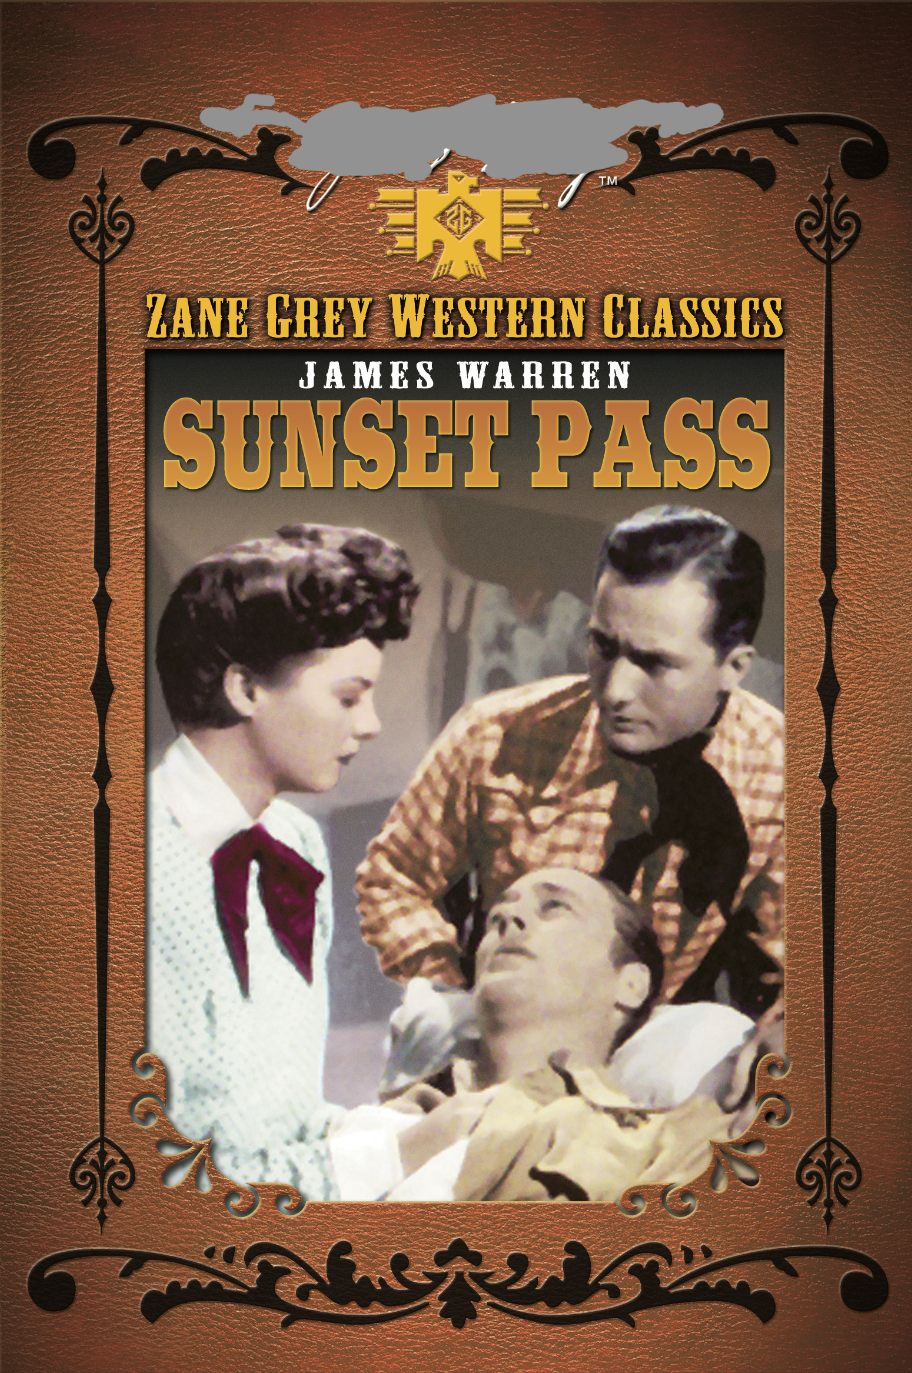 ZANE GREY: SUNSET PASS